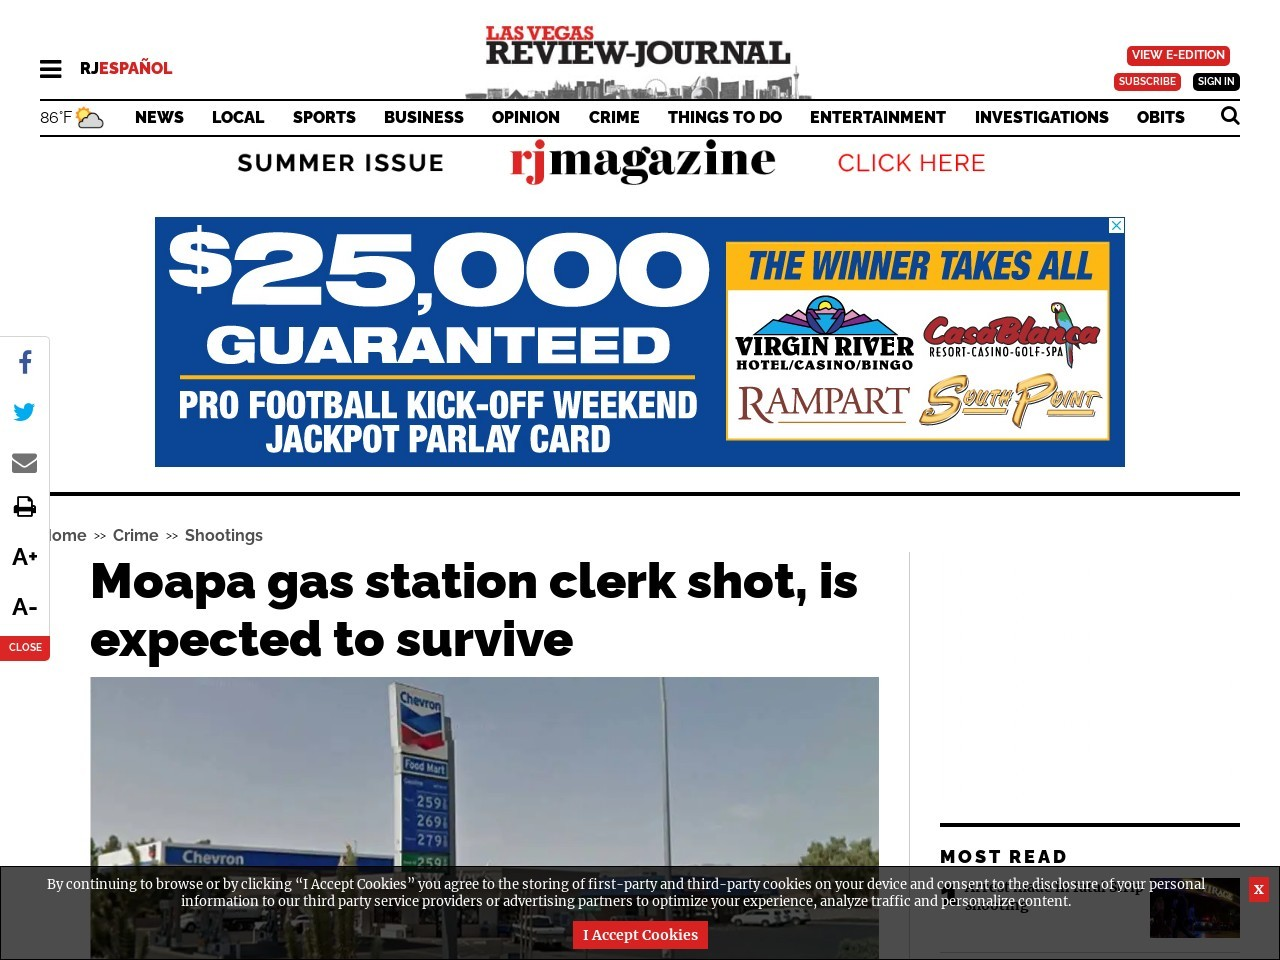 Moapa gas station clerk shot, is expected to survive